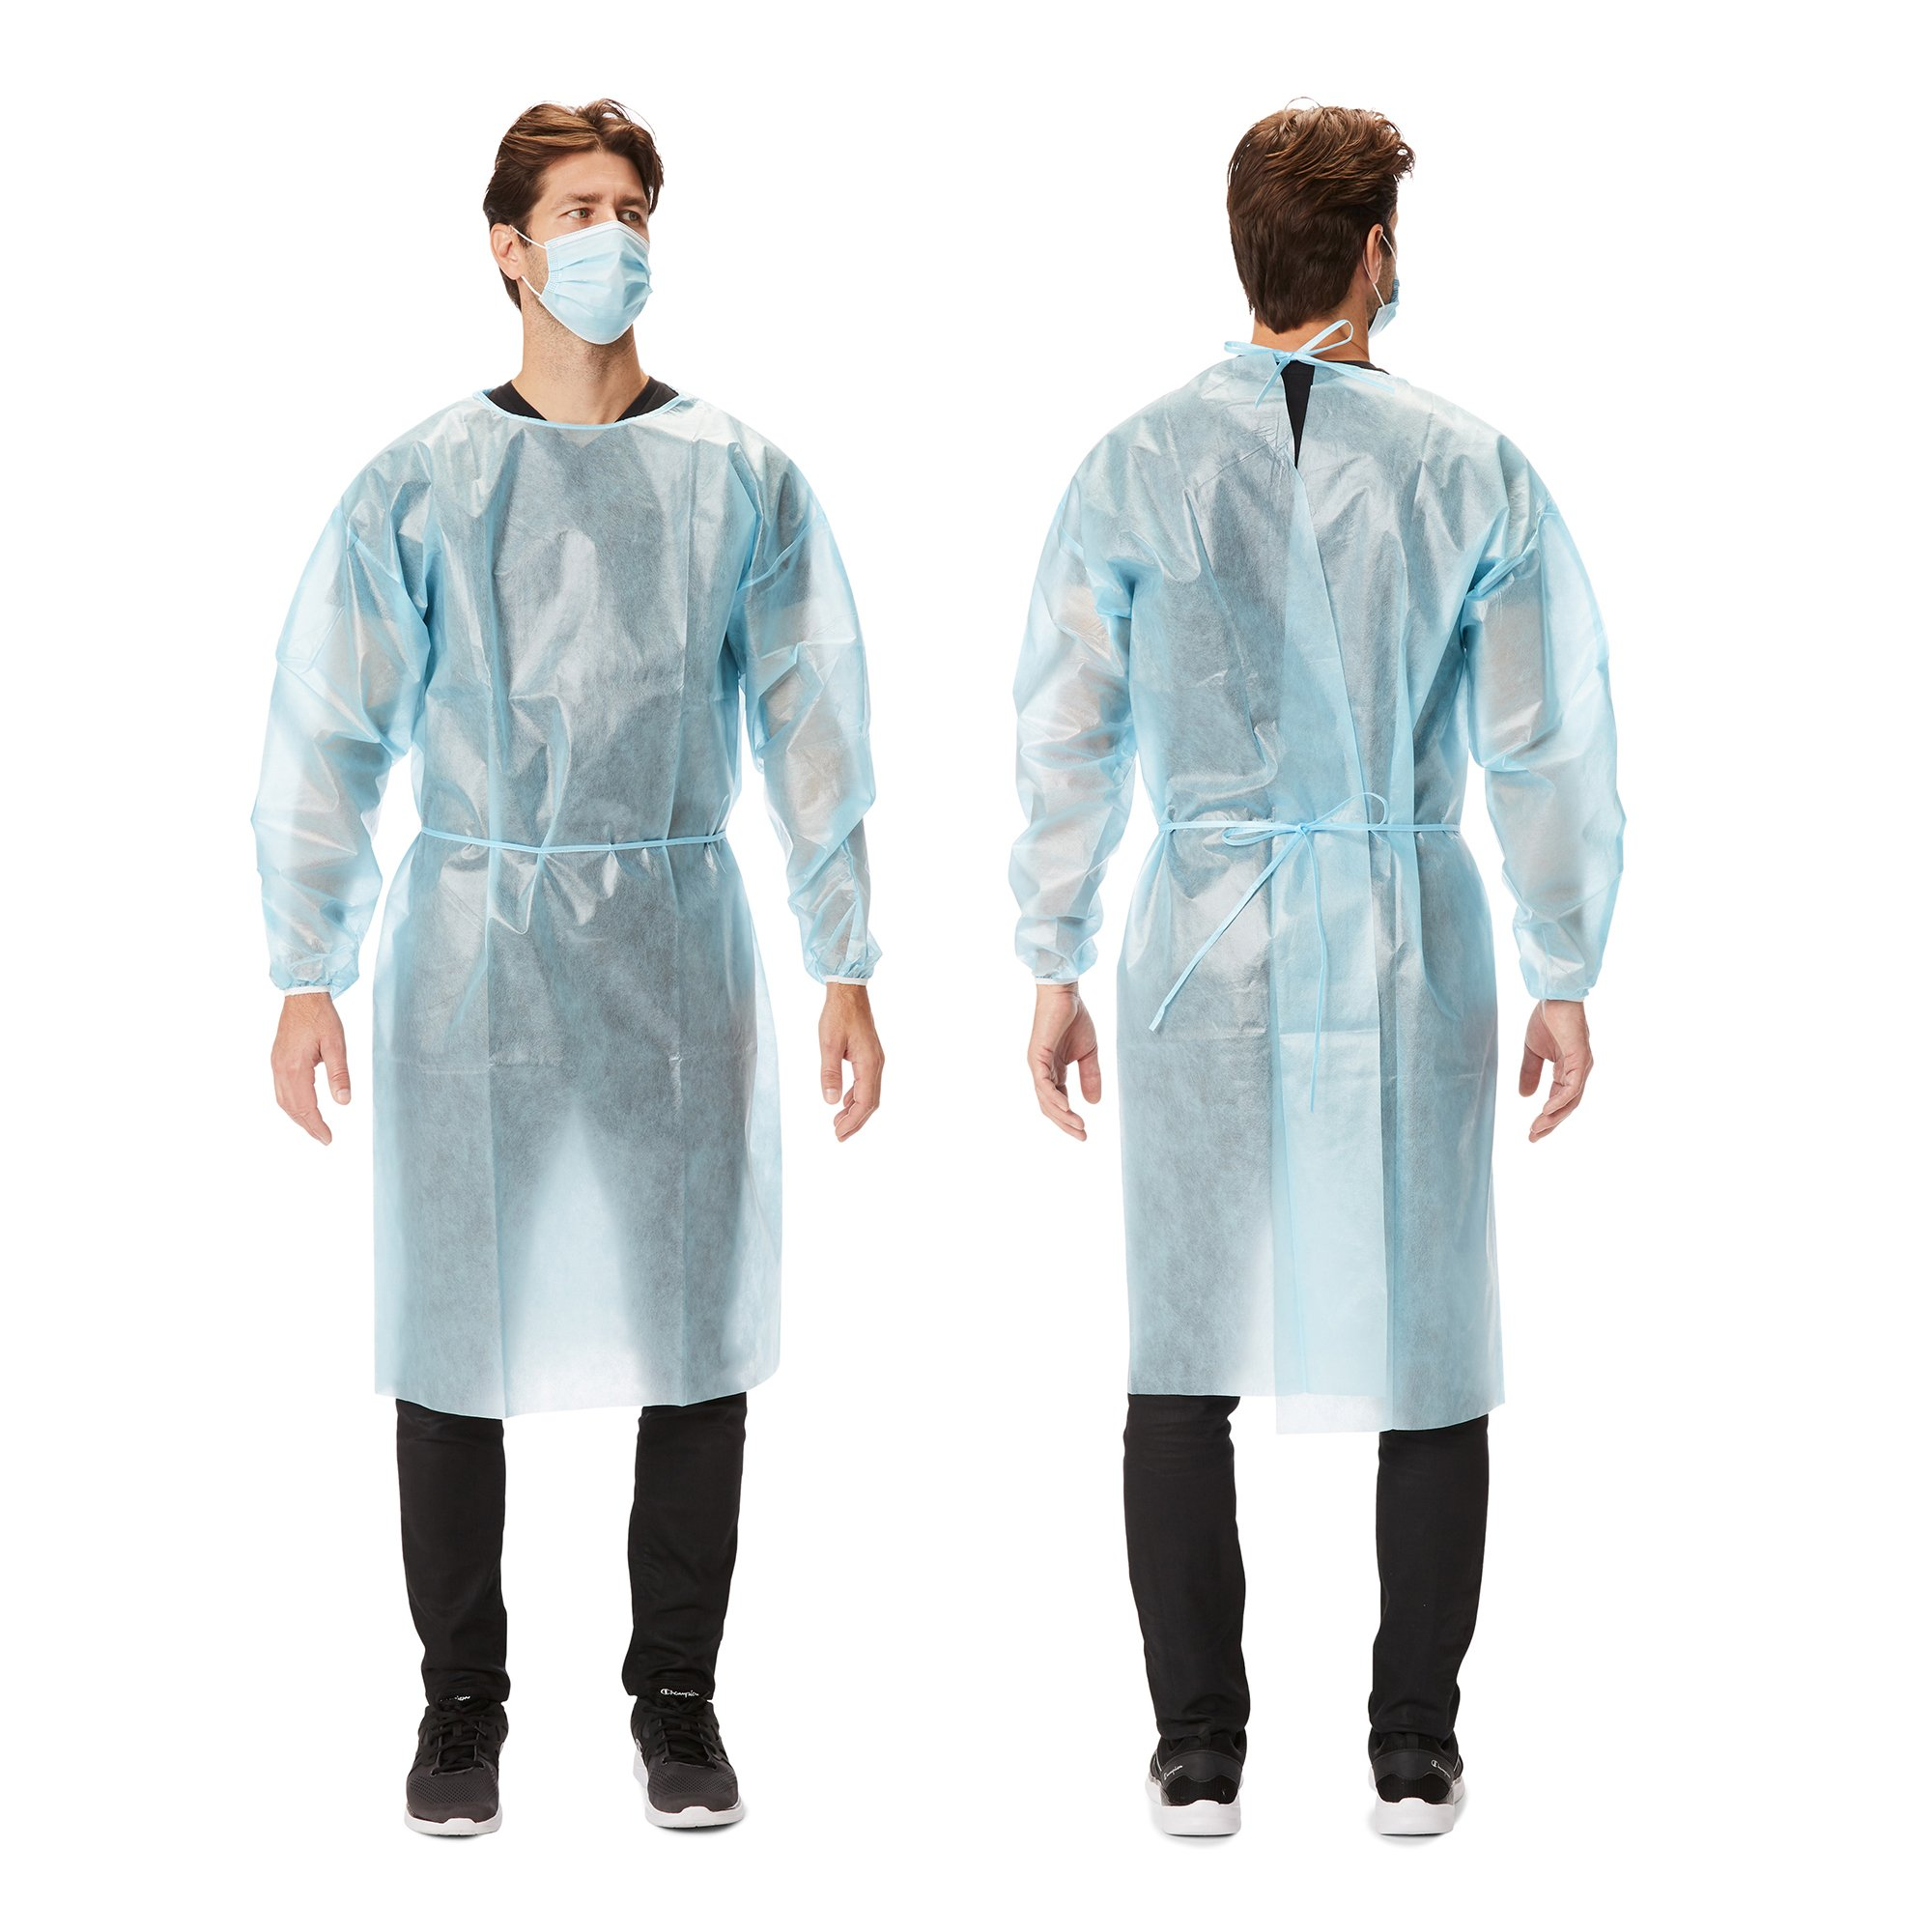 Picture of Protective Procedure Gown Large Blue NonSterile AAMI Level 1 Disposable, 10 per Bag